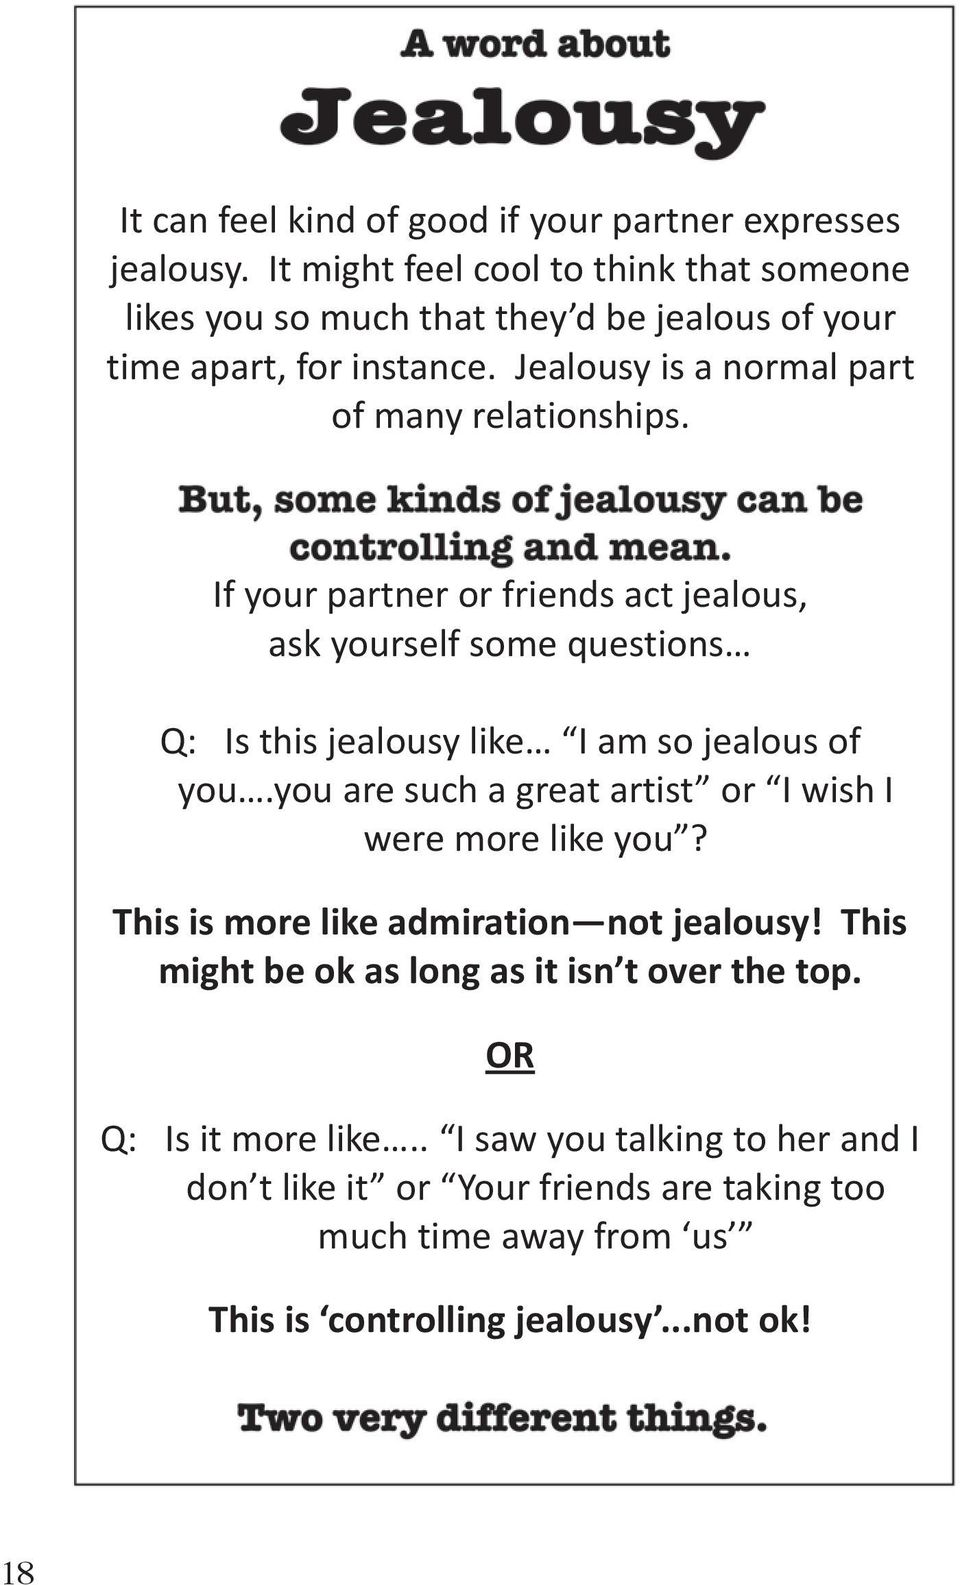 If your partner or friends act jealous, ask yourself some questions Q: Is this jealousy like I am so jealous of you.